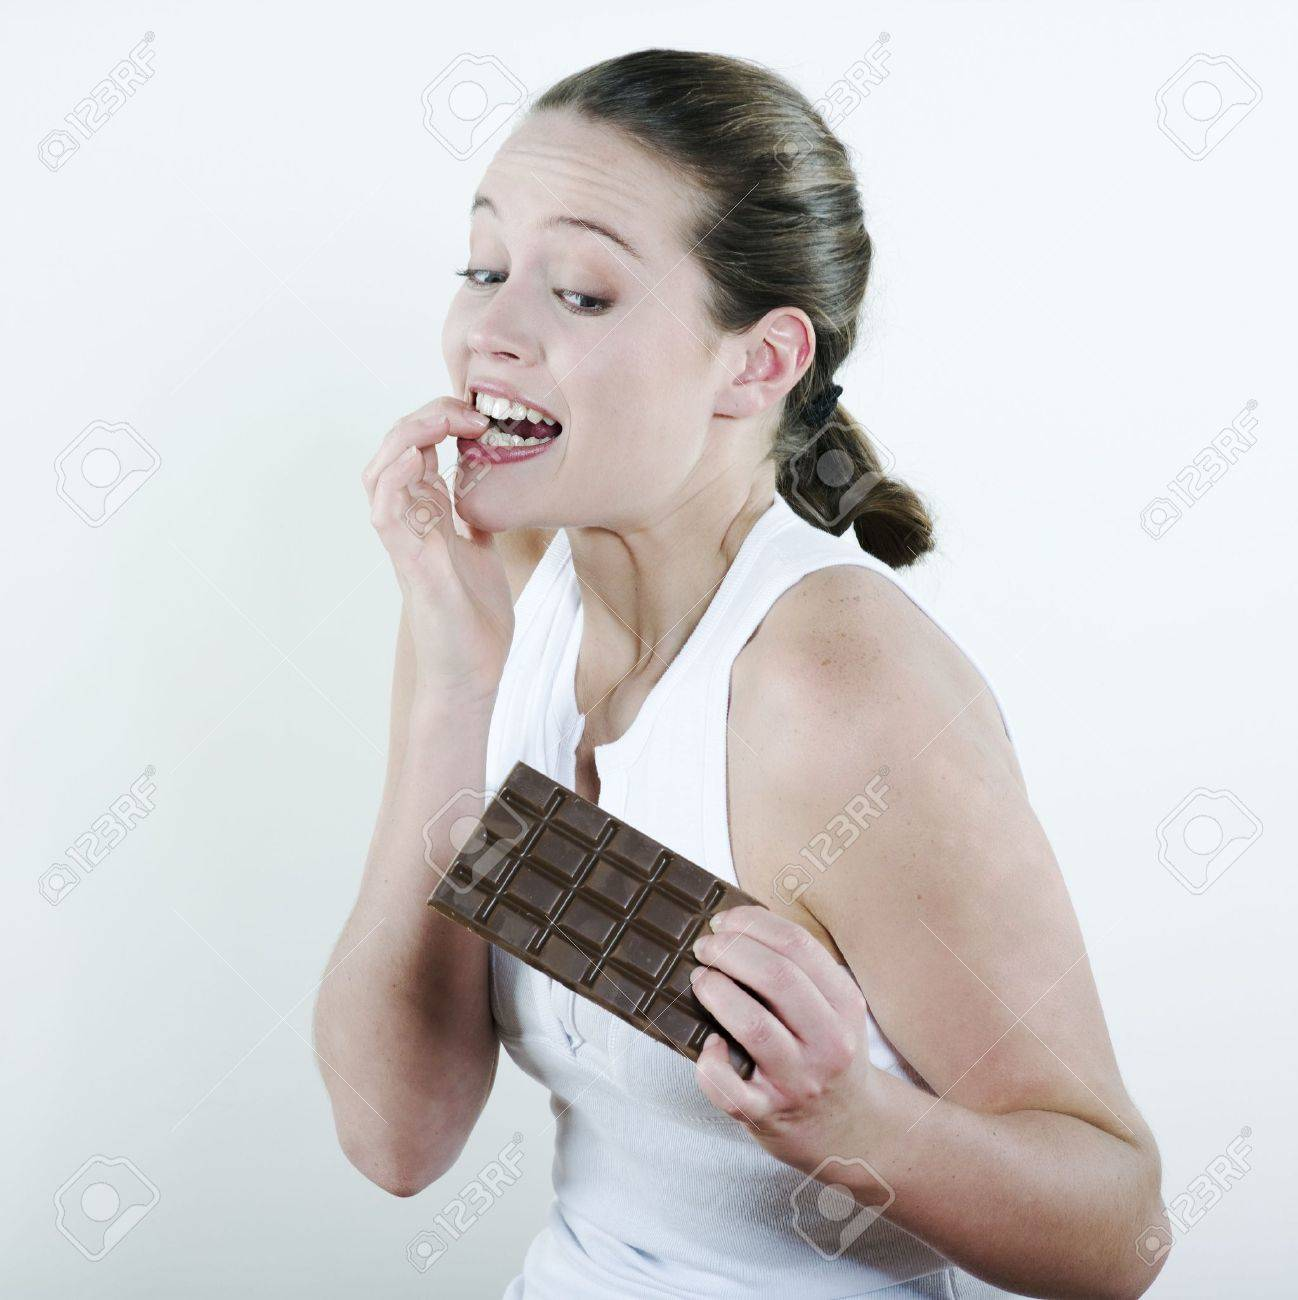 studio portrait on isolated background of a young beautiful caucasian woman holding a chocolate table Stock Photo - 2966828